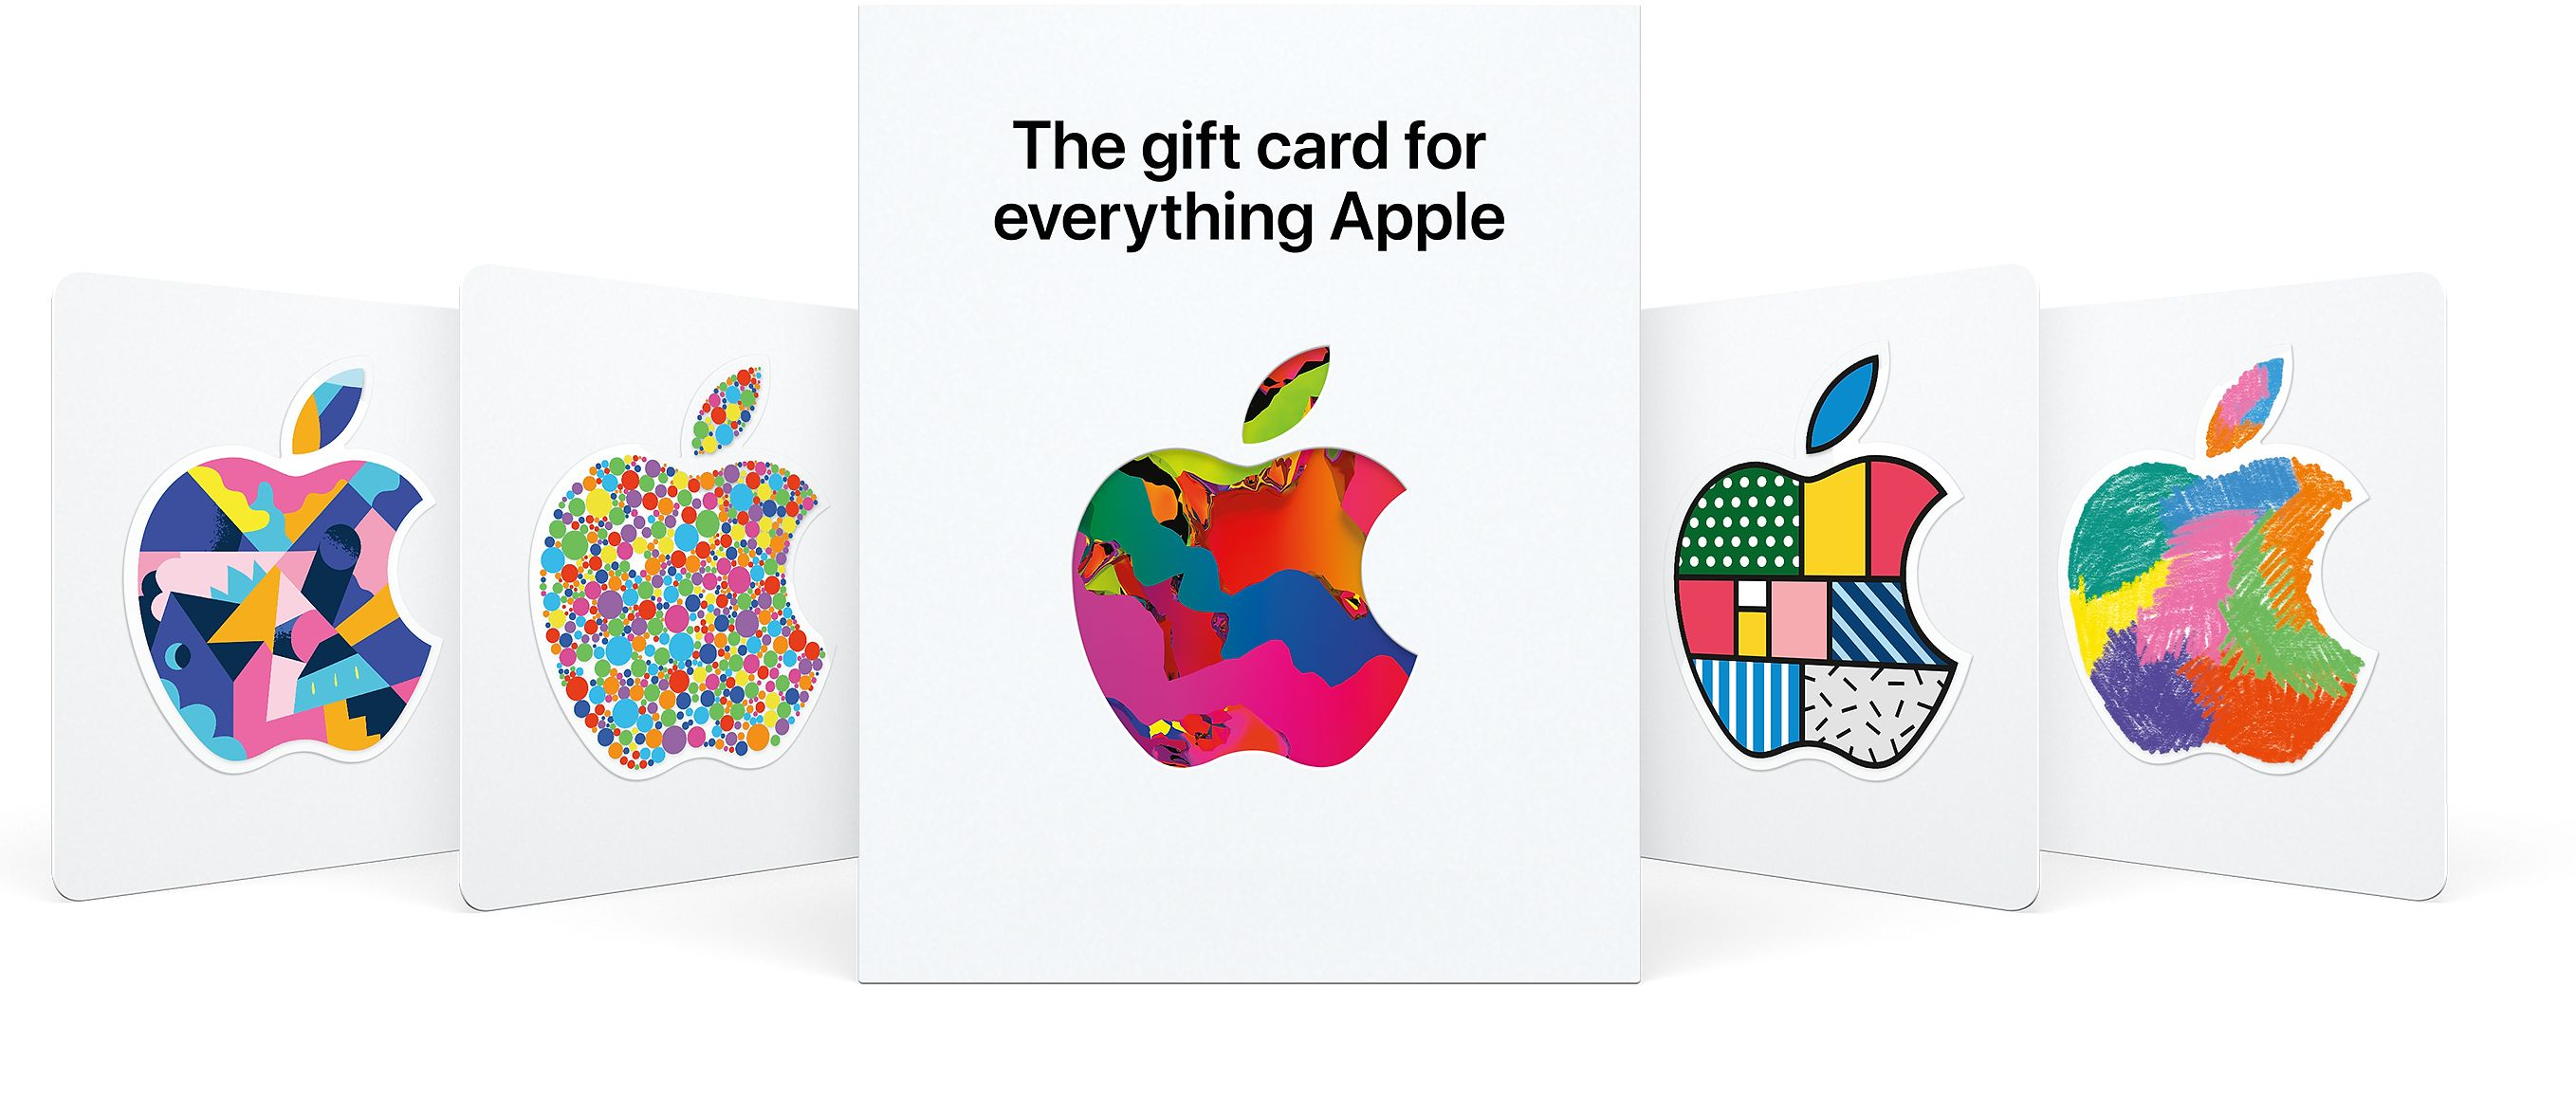 https://www.macfreak.nl/modules/news/images/zArt.AppleGiftCards2020.jpg